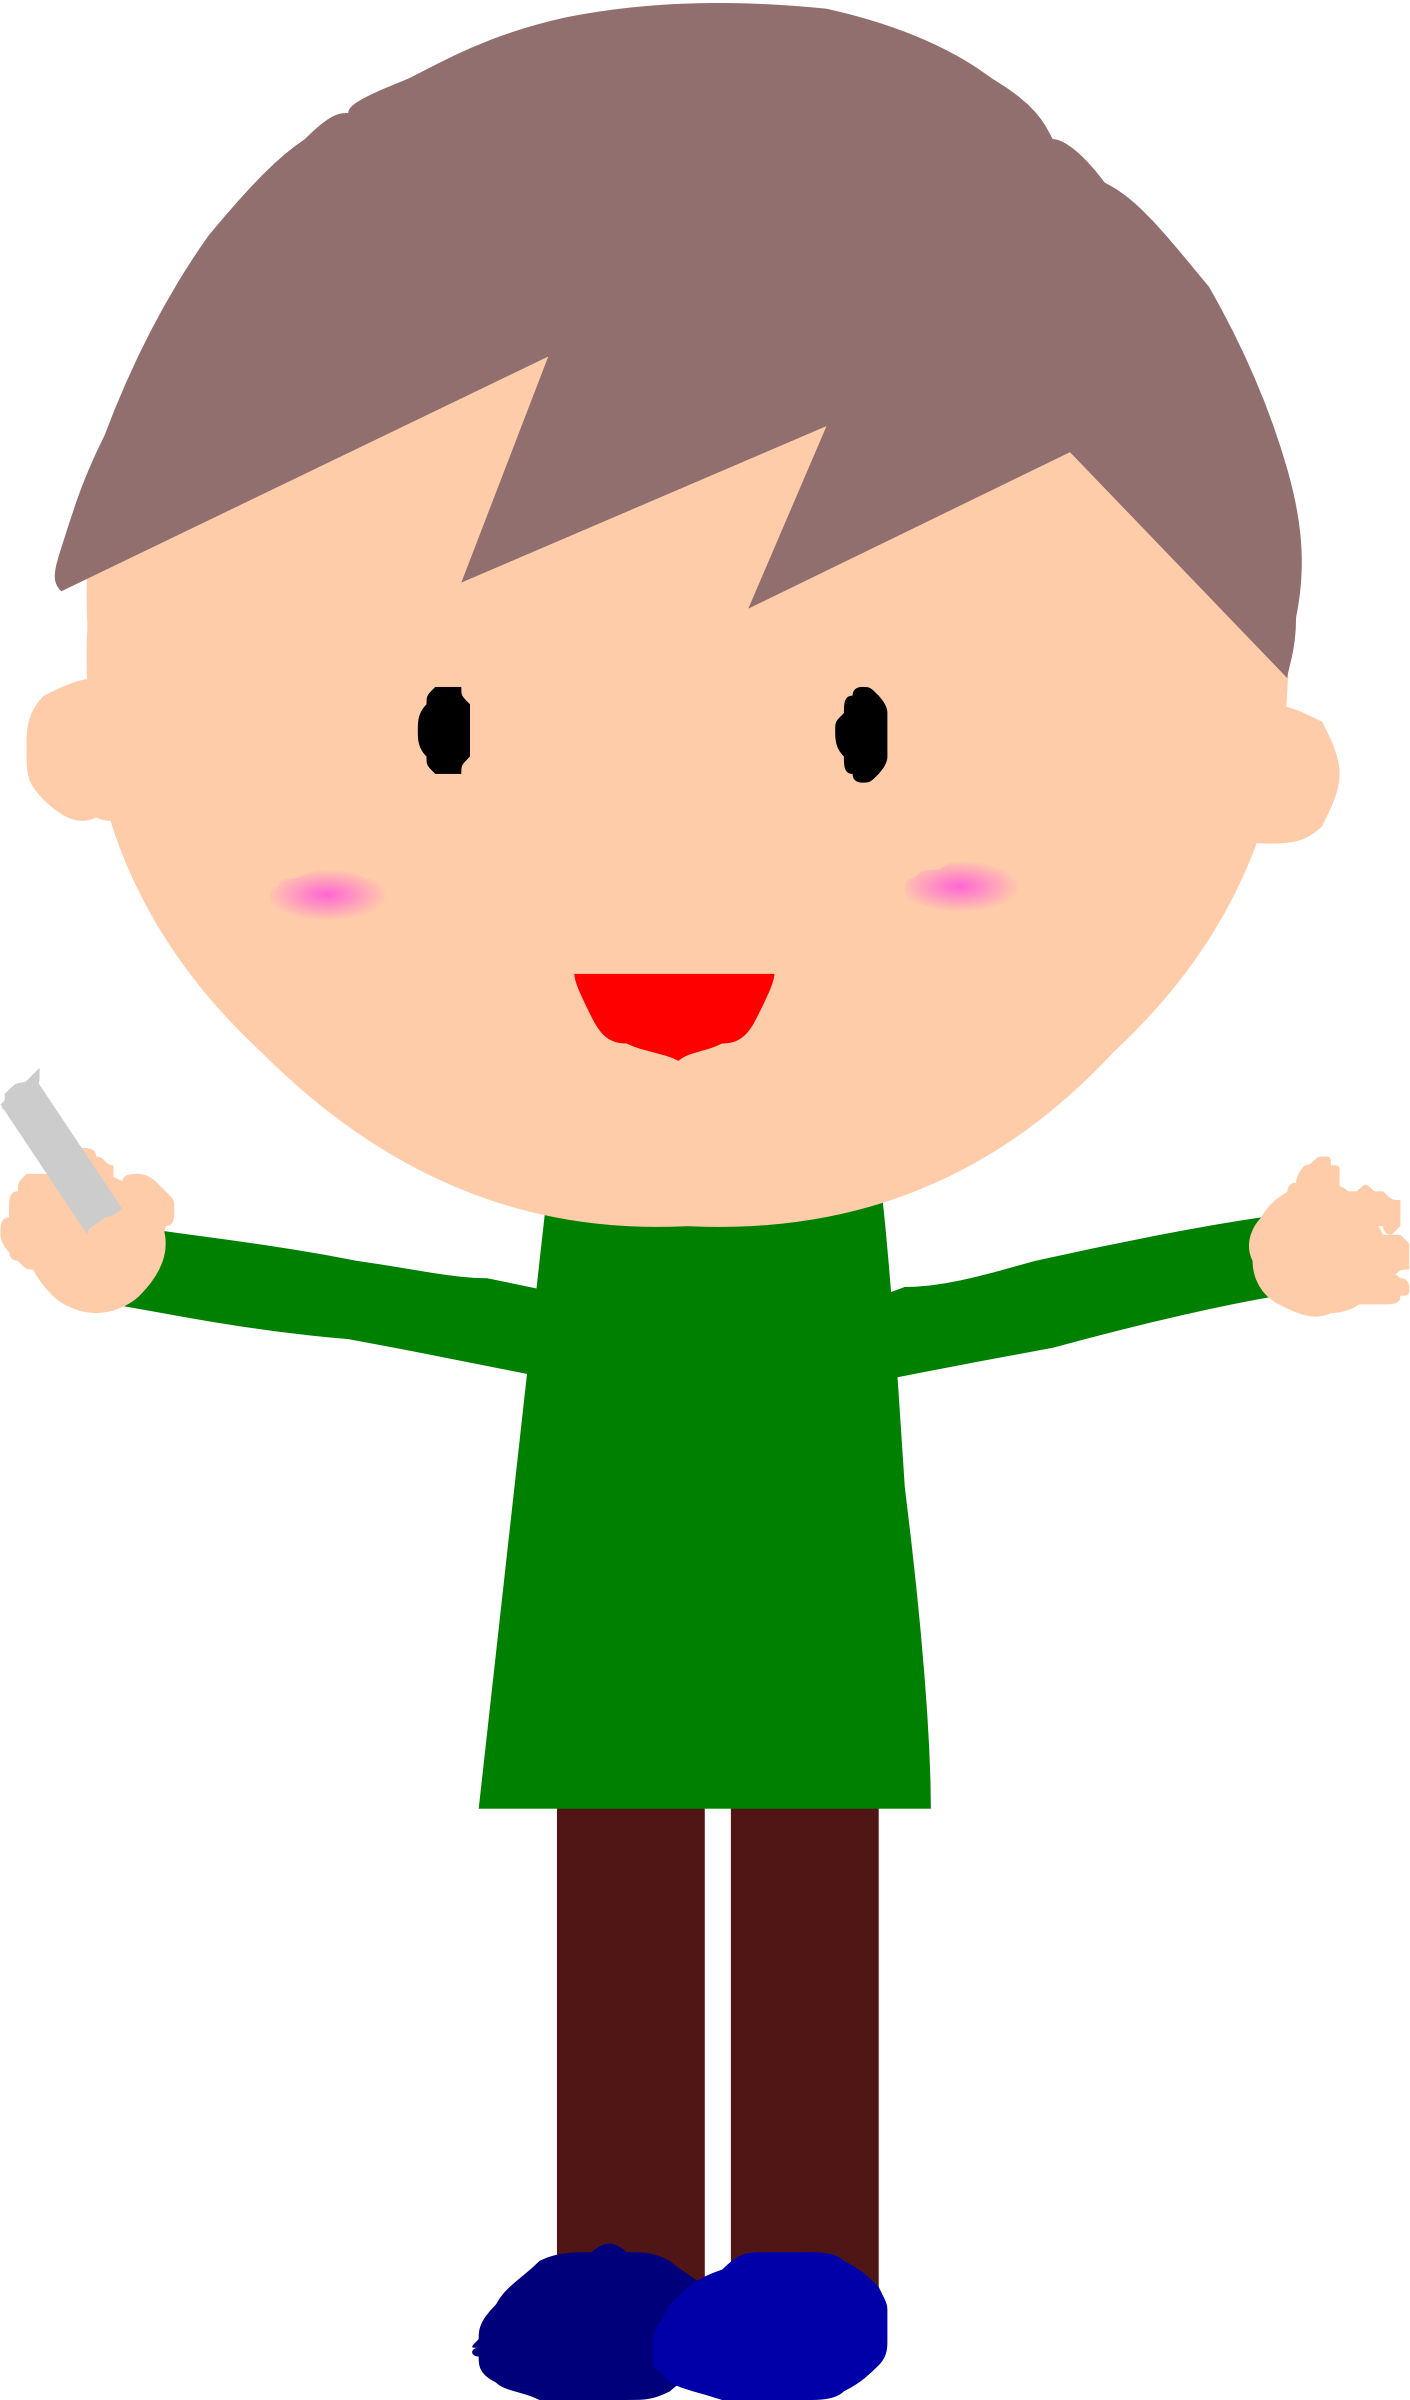 ms office animated clip art - photo #29